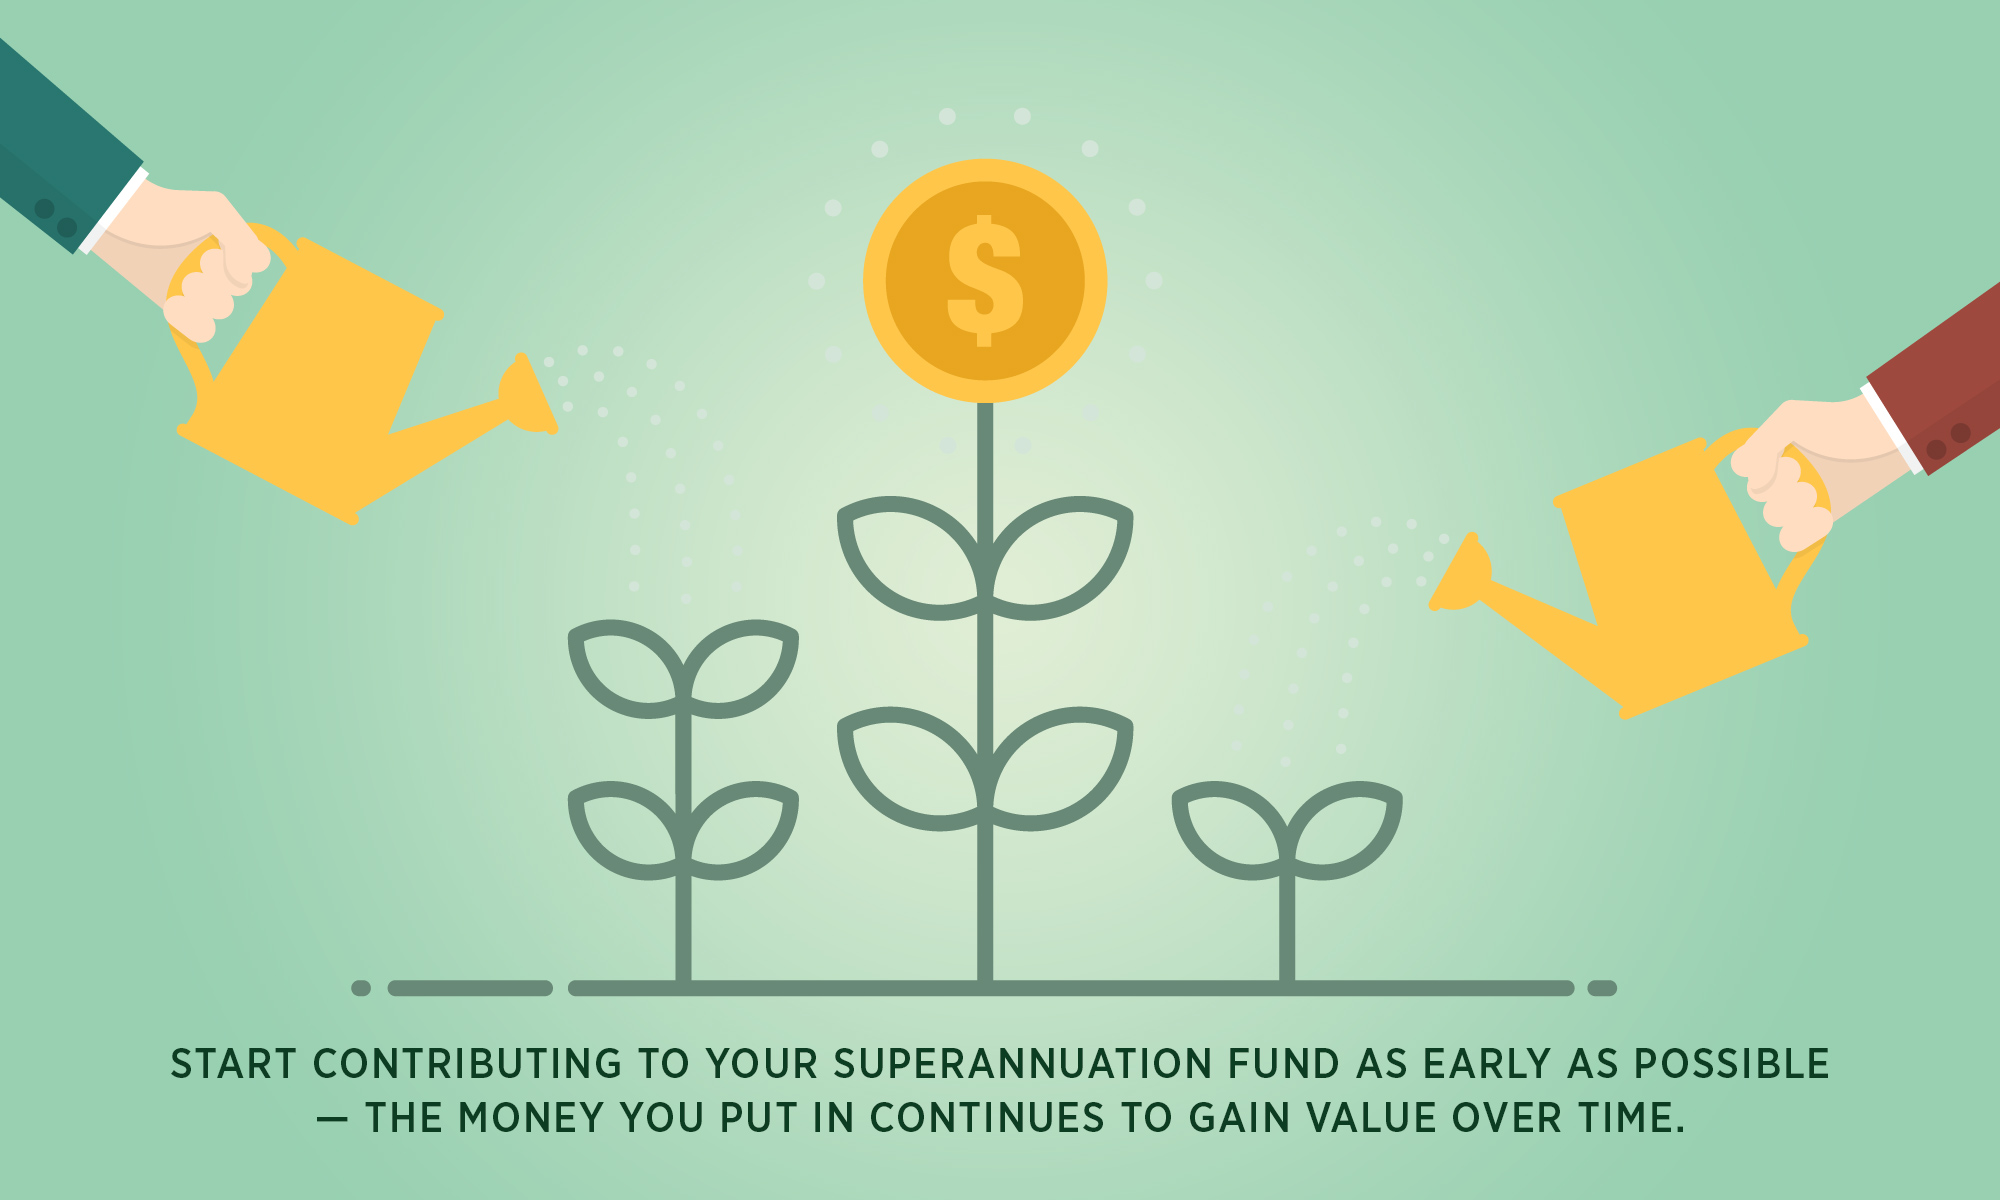 Comprehensive Guide To Superannuation in 2018 - My Wealth